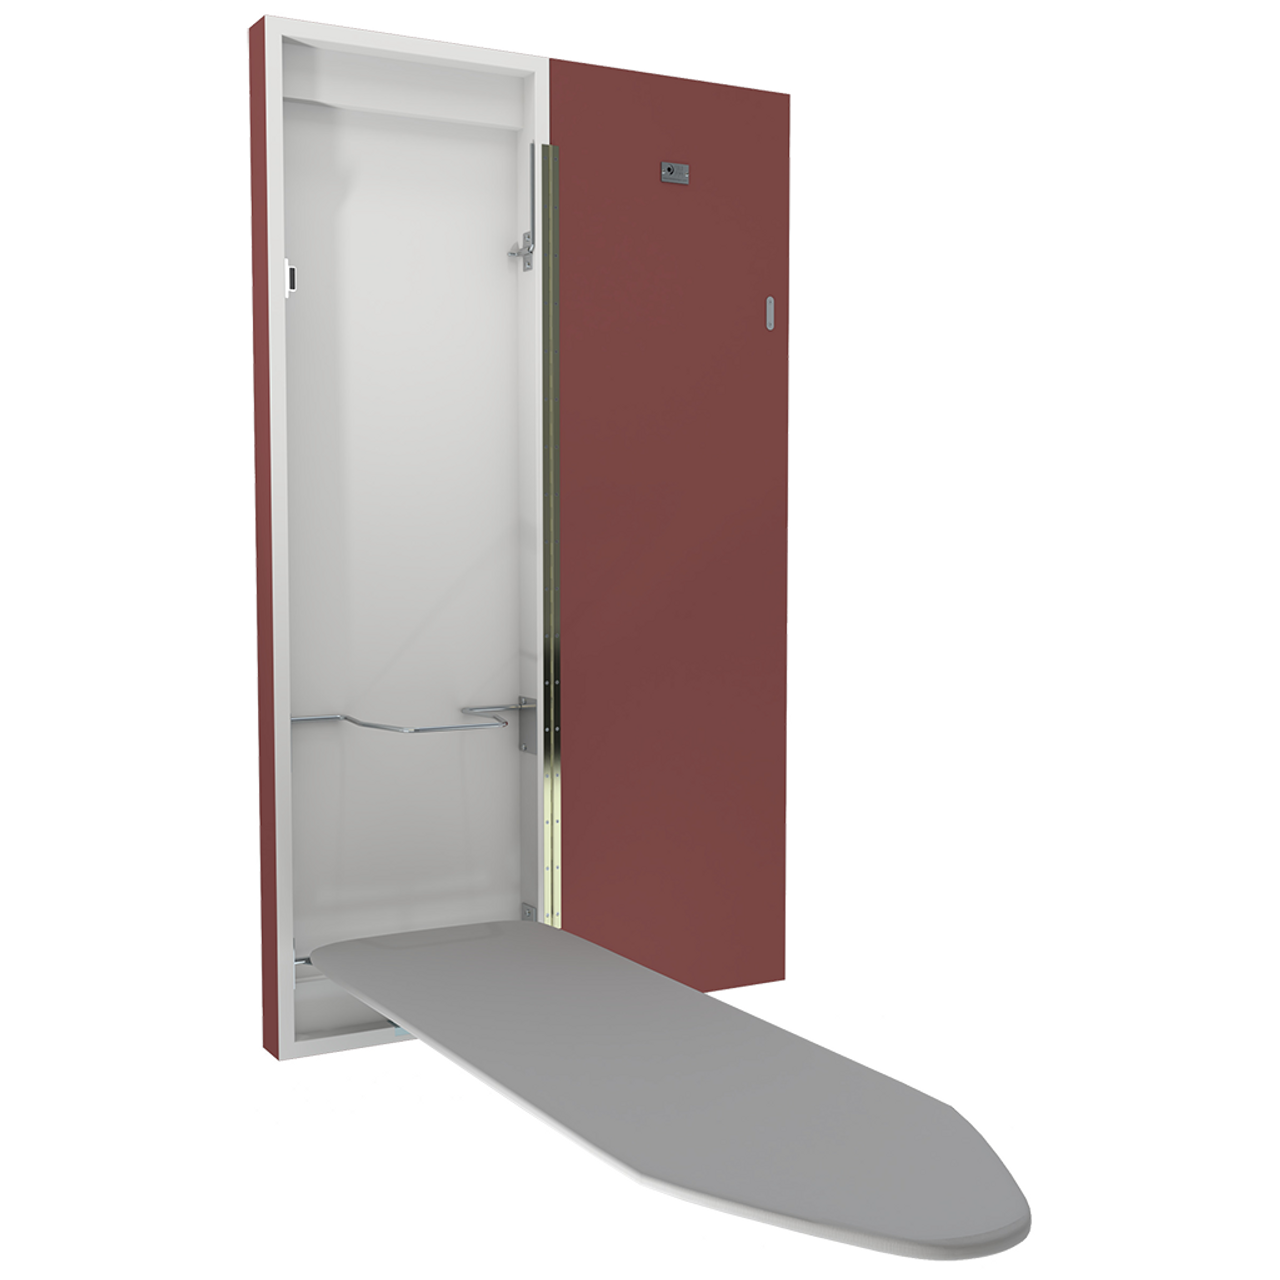 Red painted coloured deluxe ironing board with the door open and board folded down